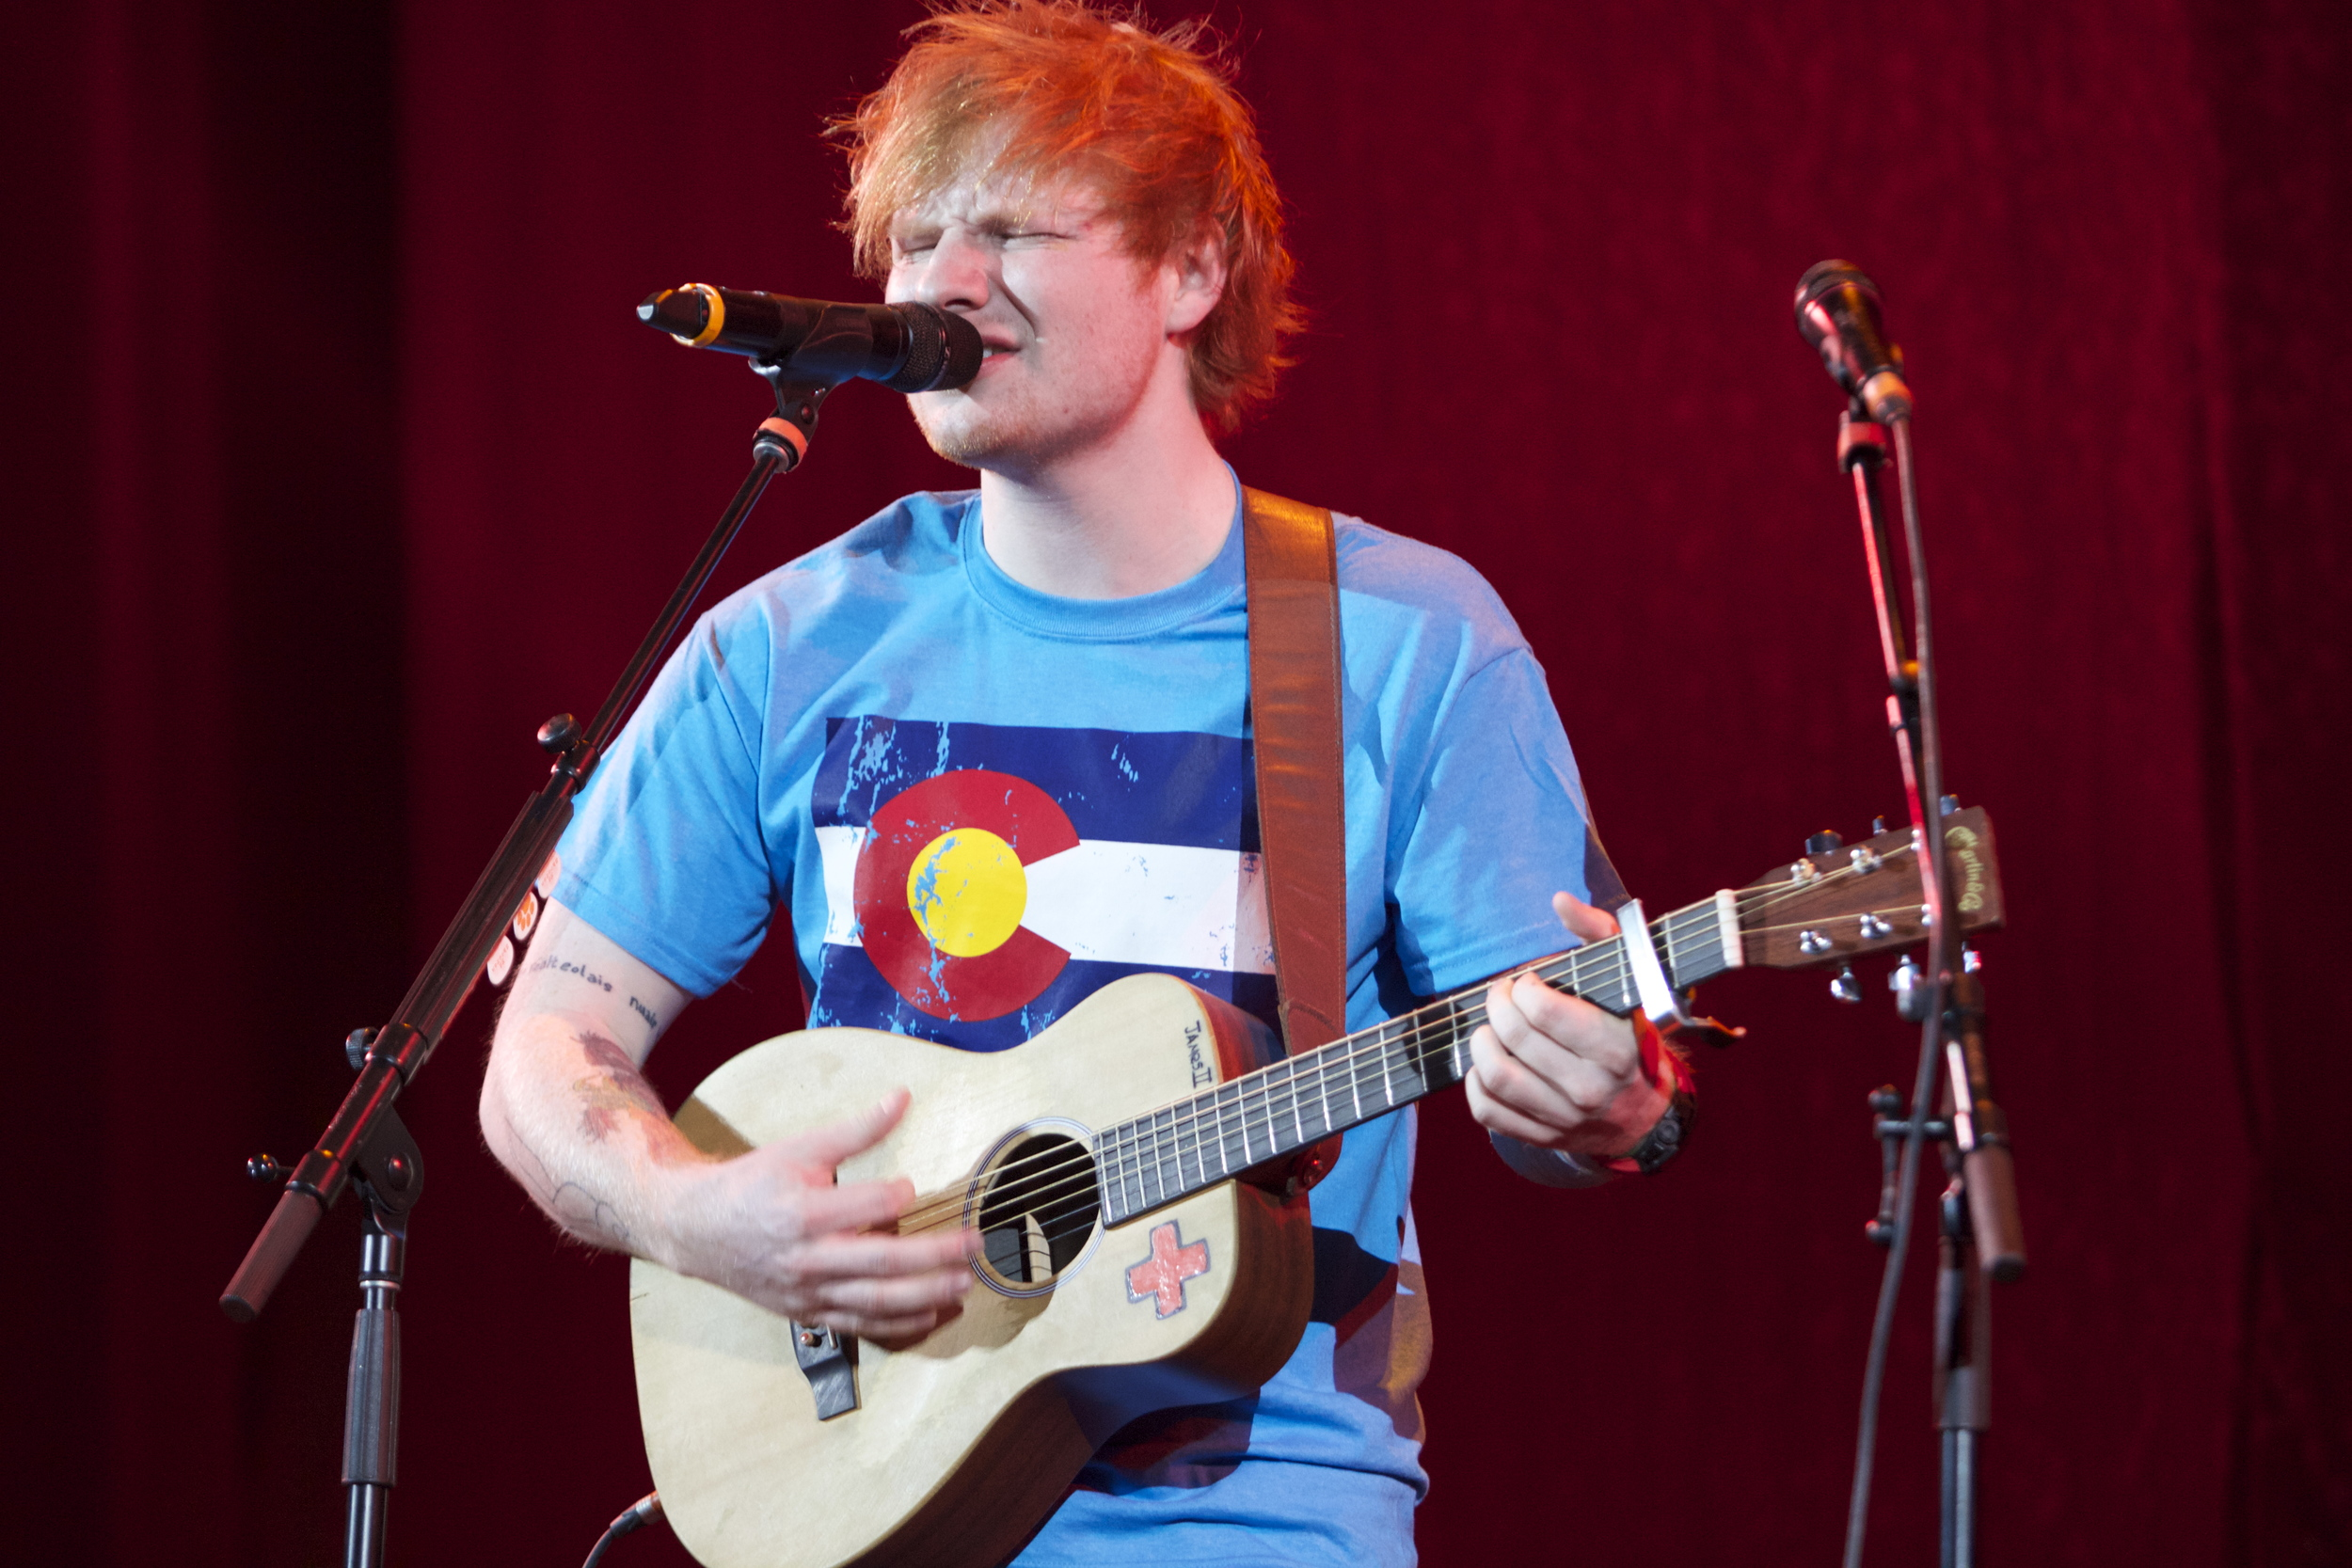 Ed Sheeran representing Colorado with his awesome shirt (Photo Credit: Robert Castro)